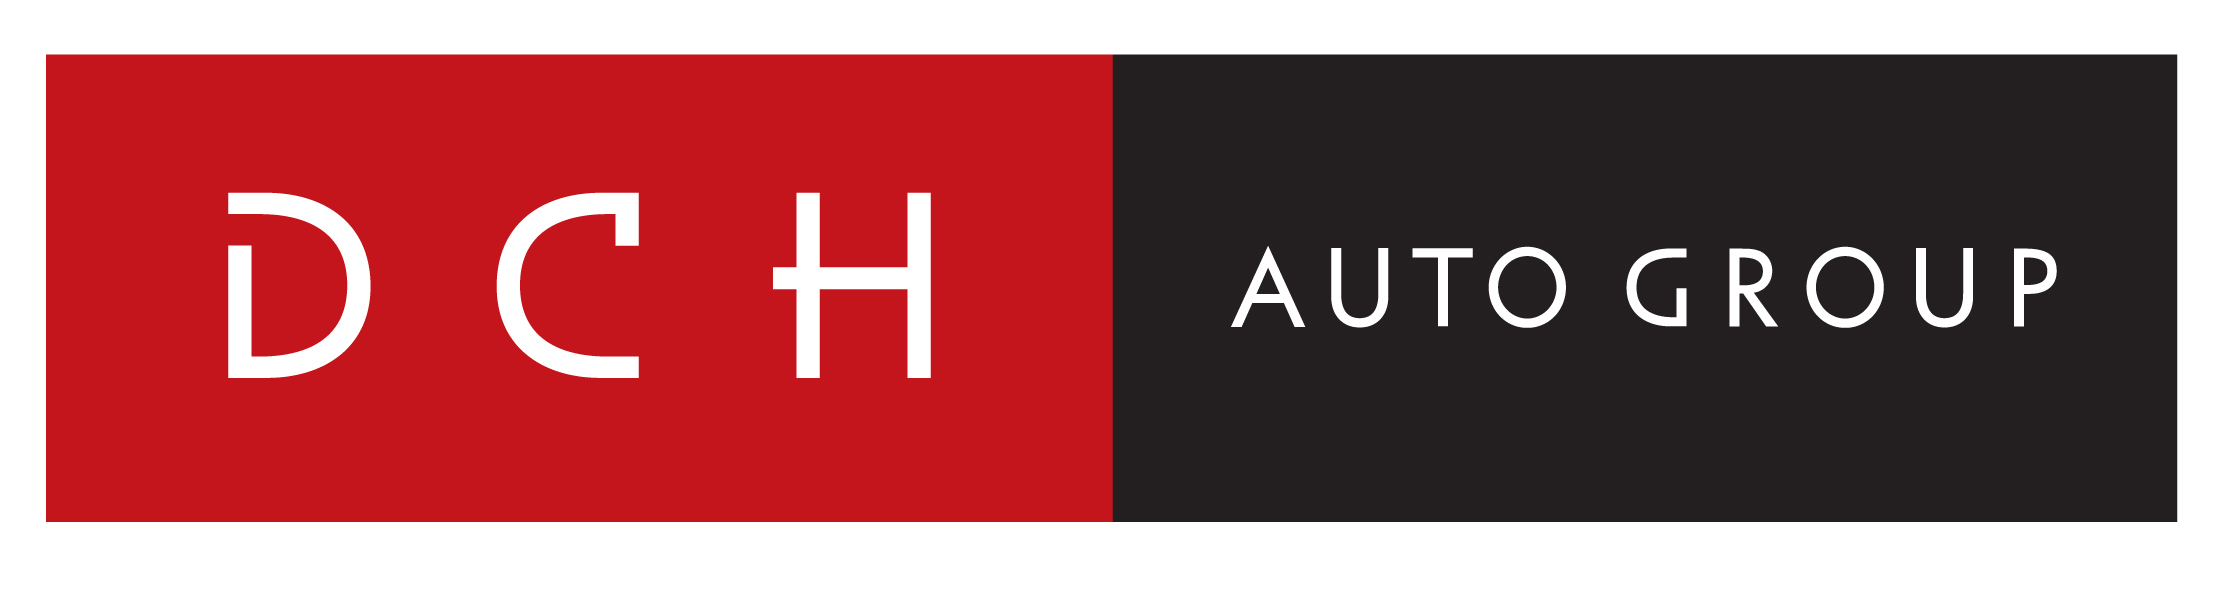 Dch Audi Oxnard Dch Audi Oxnard Dch Auto Group Is A Proud Partner Of The Local